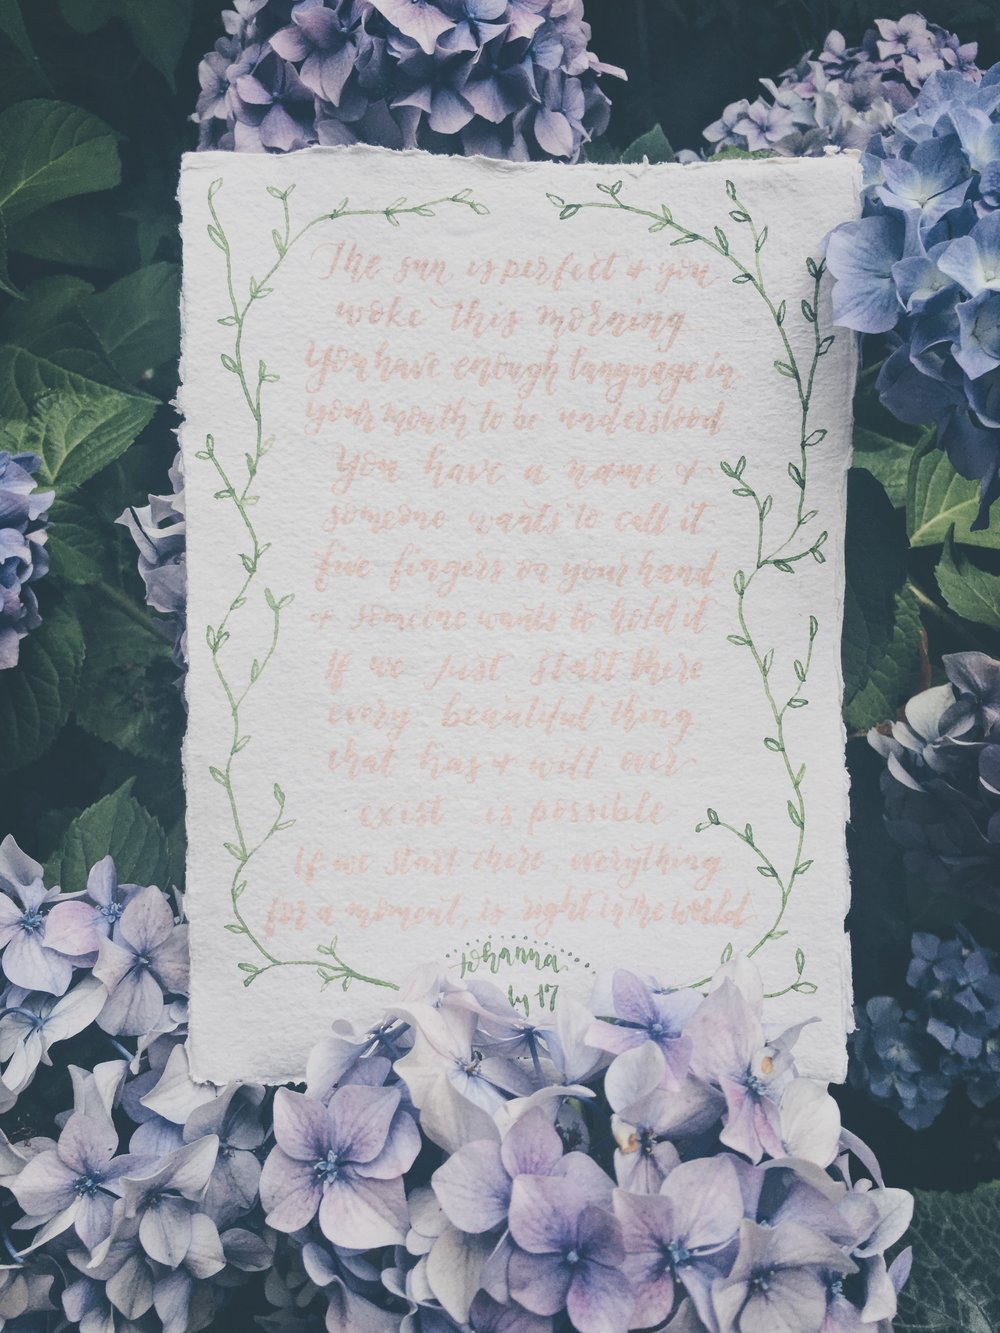 Decorative  Items  Quotations, vows, lyrics or personal messages, hand lettered.